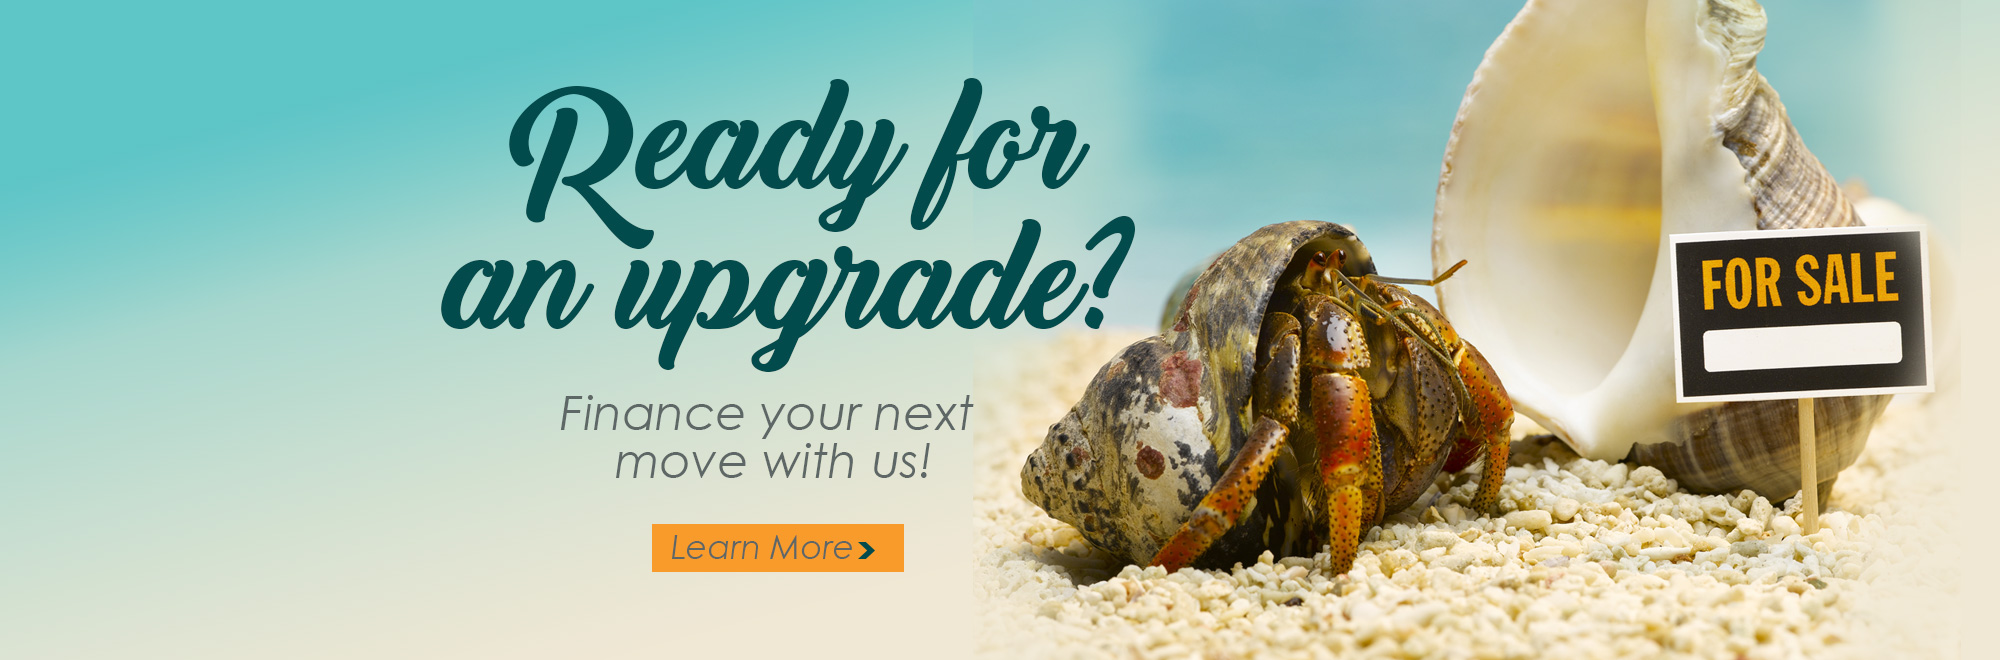 Ready for an upgrade? Finance your next move with us! Image of a hermit crab on sand with a for sale sign next to an empty shell.